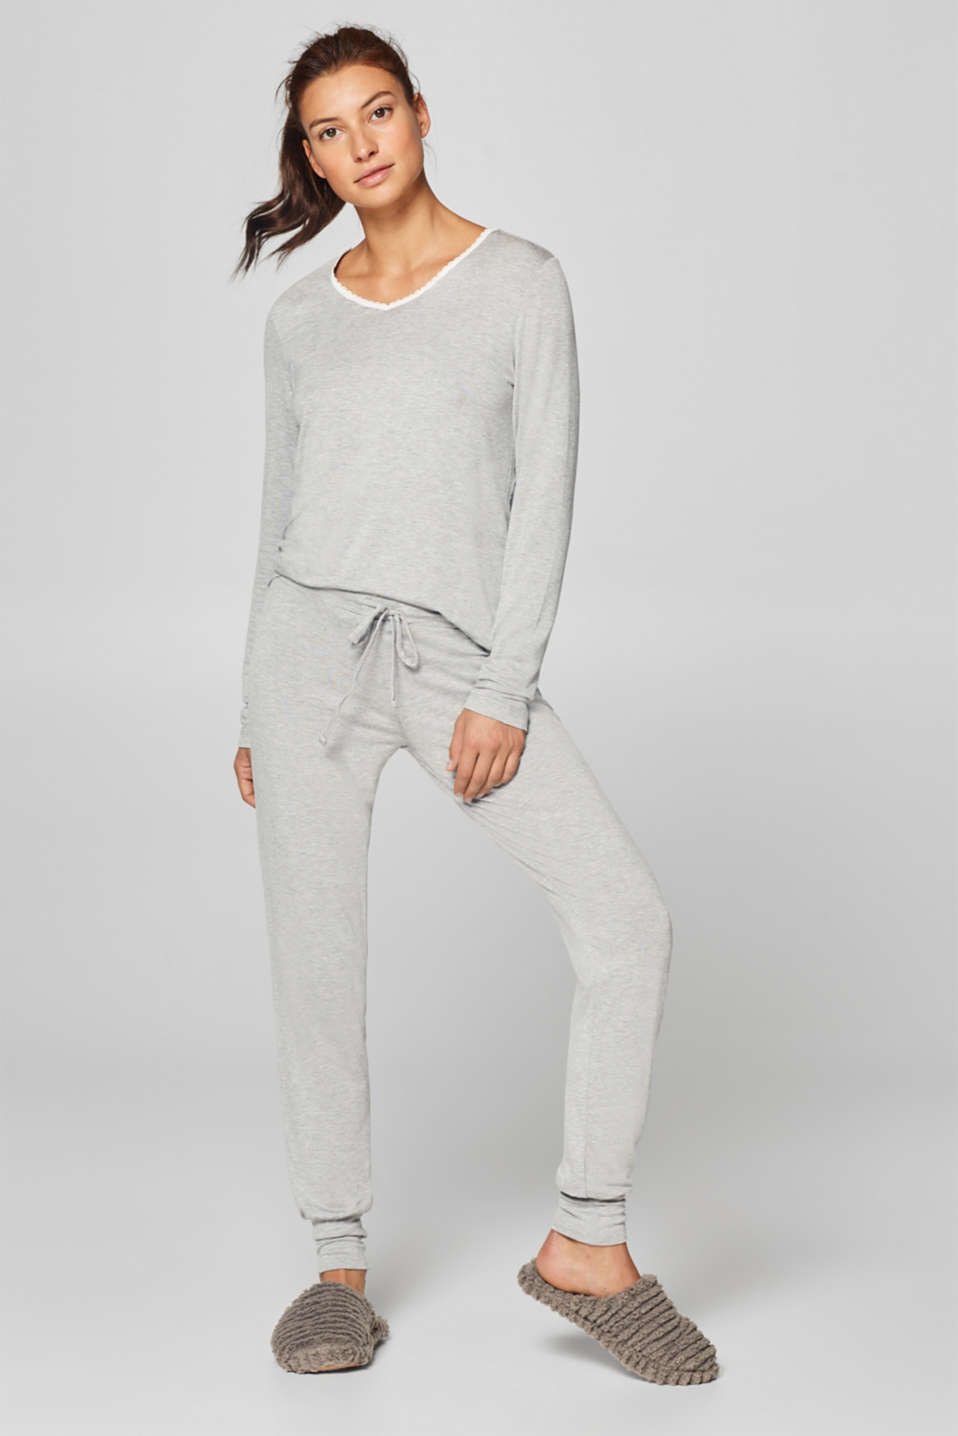 Esprit - Pyjama bottoms made of melange stretch jersey